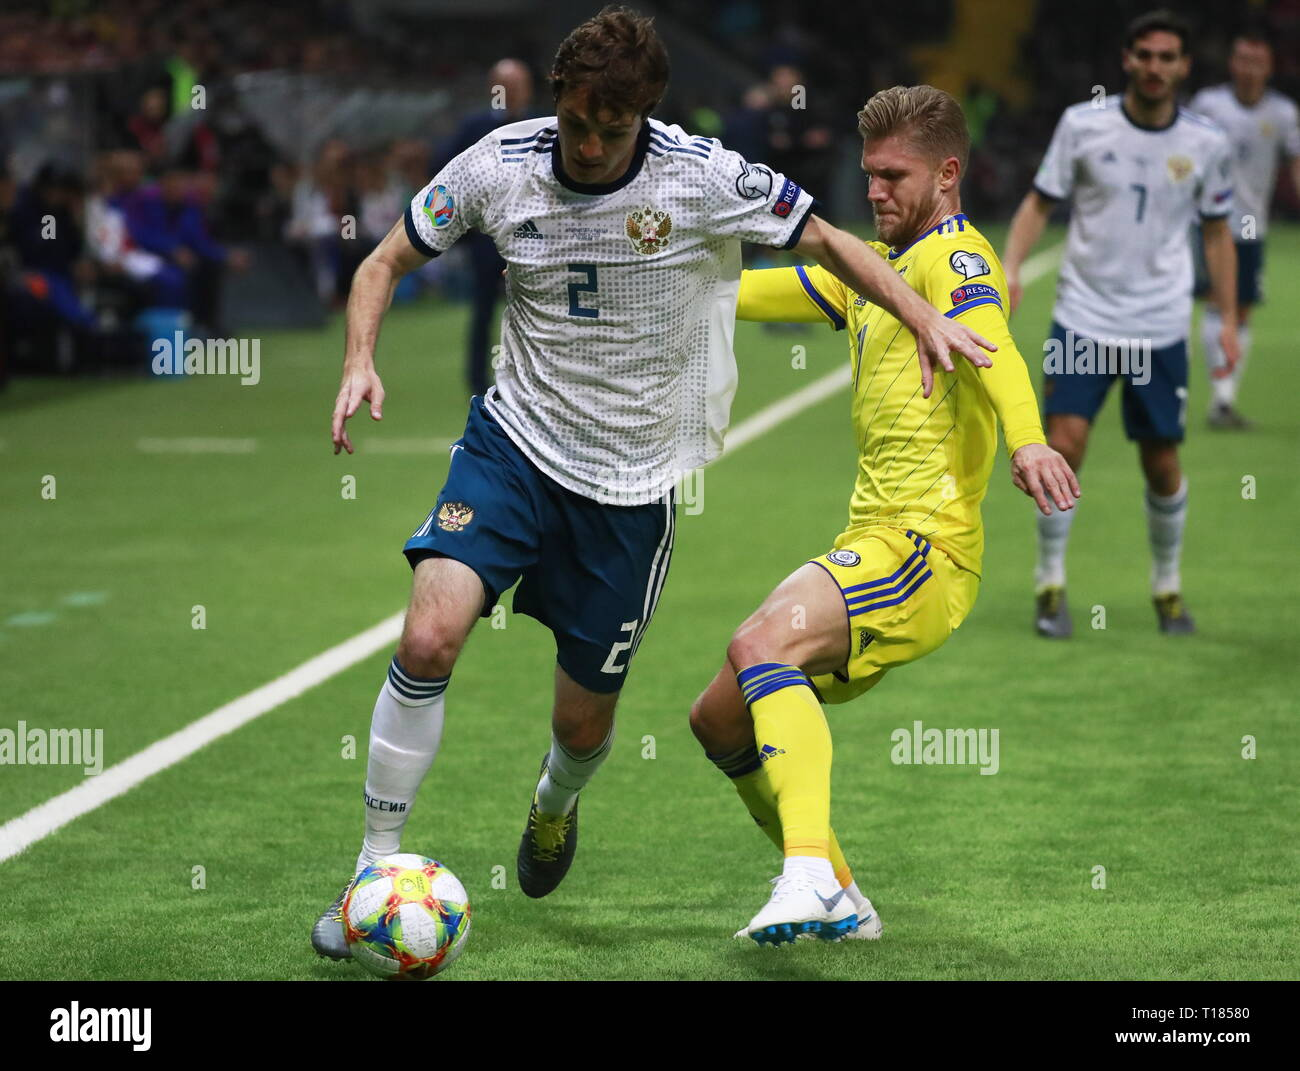 708aebcf619 NUR-SULTAN, KAZAKHSTAN - MARCH 24, 2019: Russia's Mario Fernandes (L) in  their UEFA Euro 2020 Group I Round 2 qualifying football match against  Kazakhstan ...